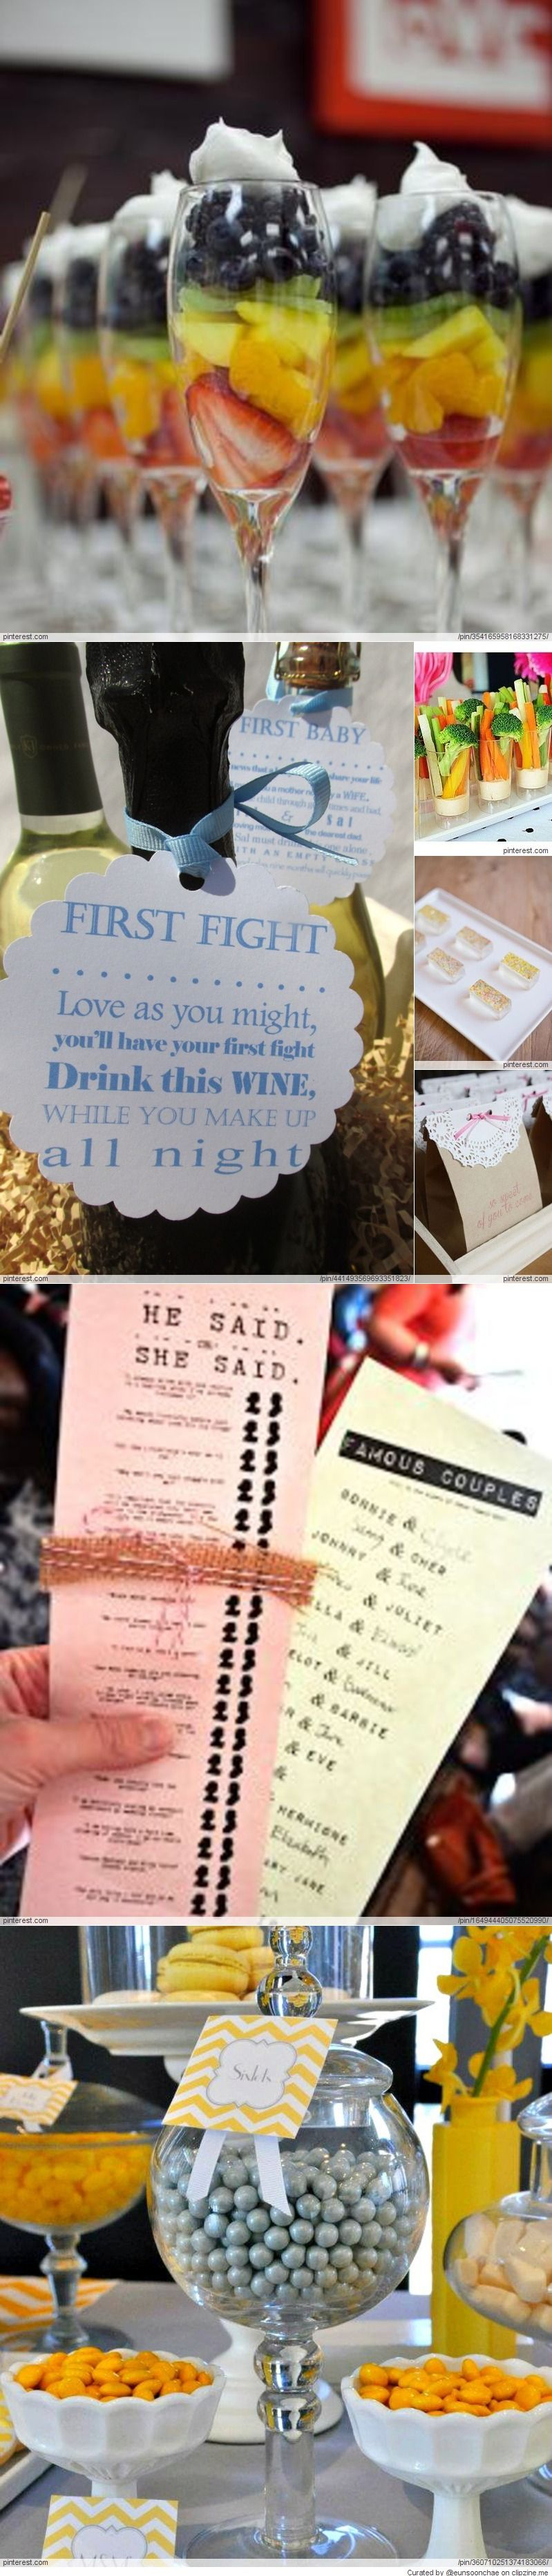 Bridal shower ideas love the famous couples card game